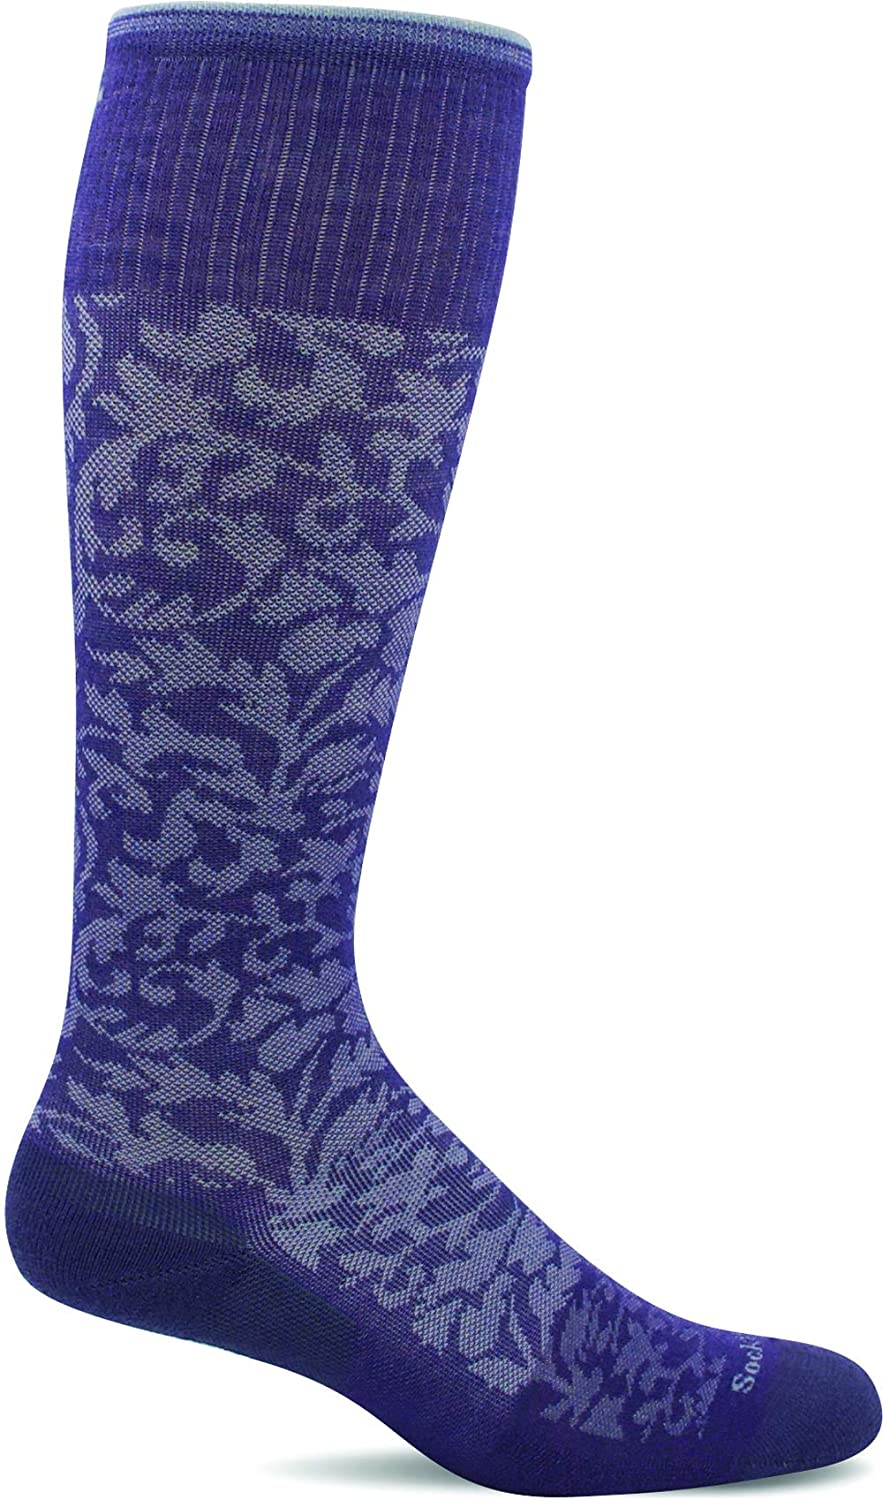 Sockwell Women's Damask Moderate Graduated Compression Sock in Plum from the side